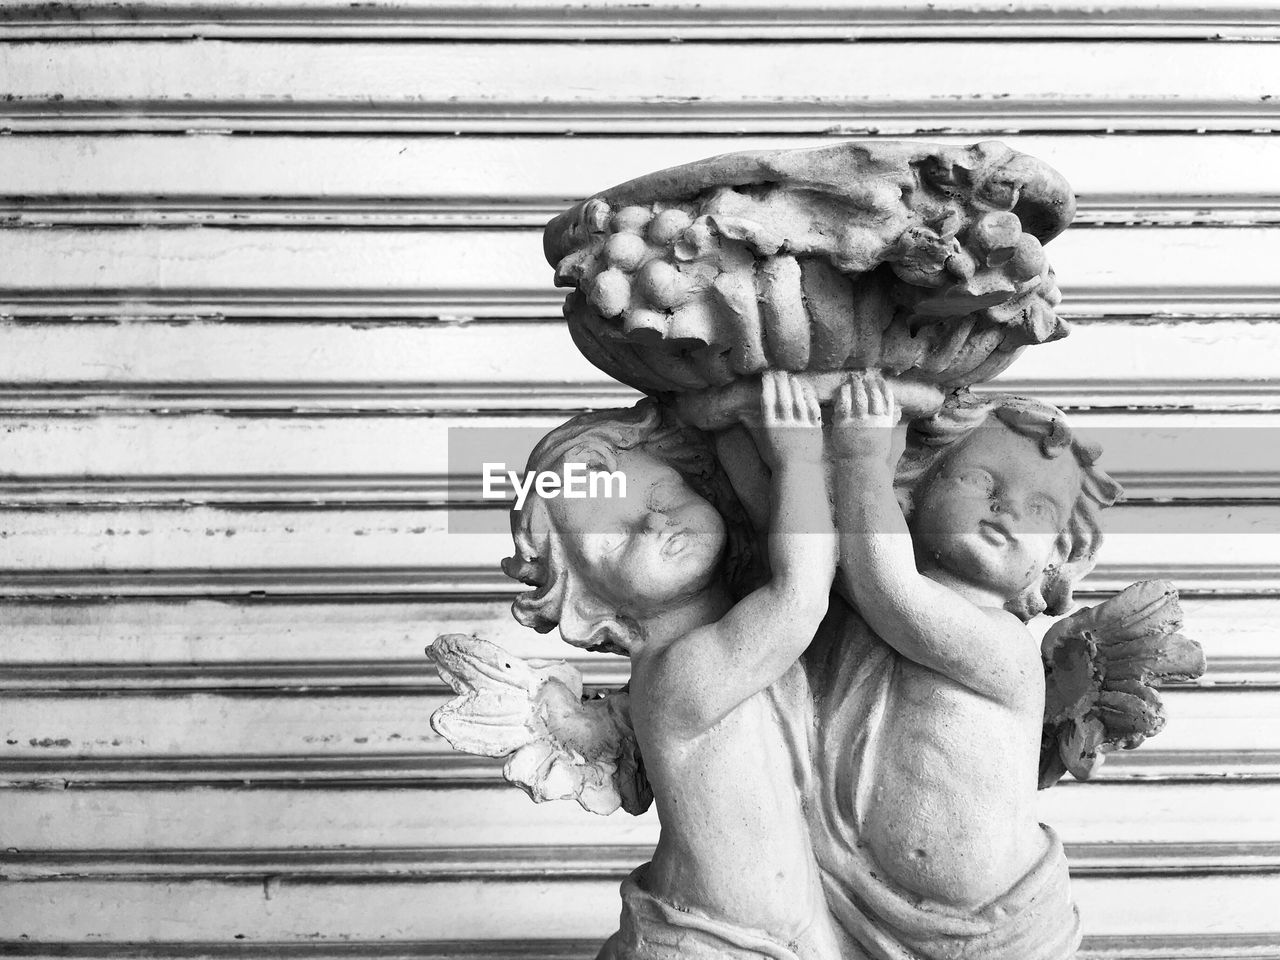 sculpture, representation, statue, art and craft, human representation, architecture, creativity, day, male likeness, no people, built structure, holding, close-up, craft, the past, history, outdoors, female likeness